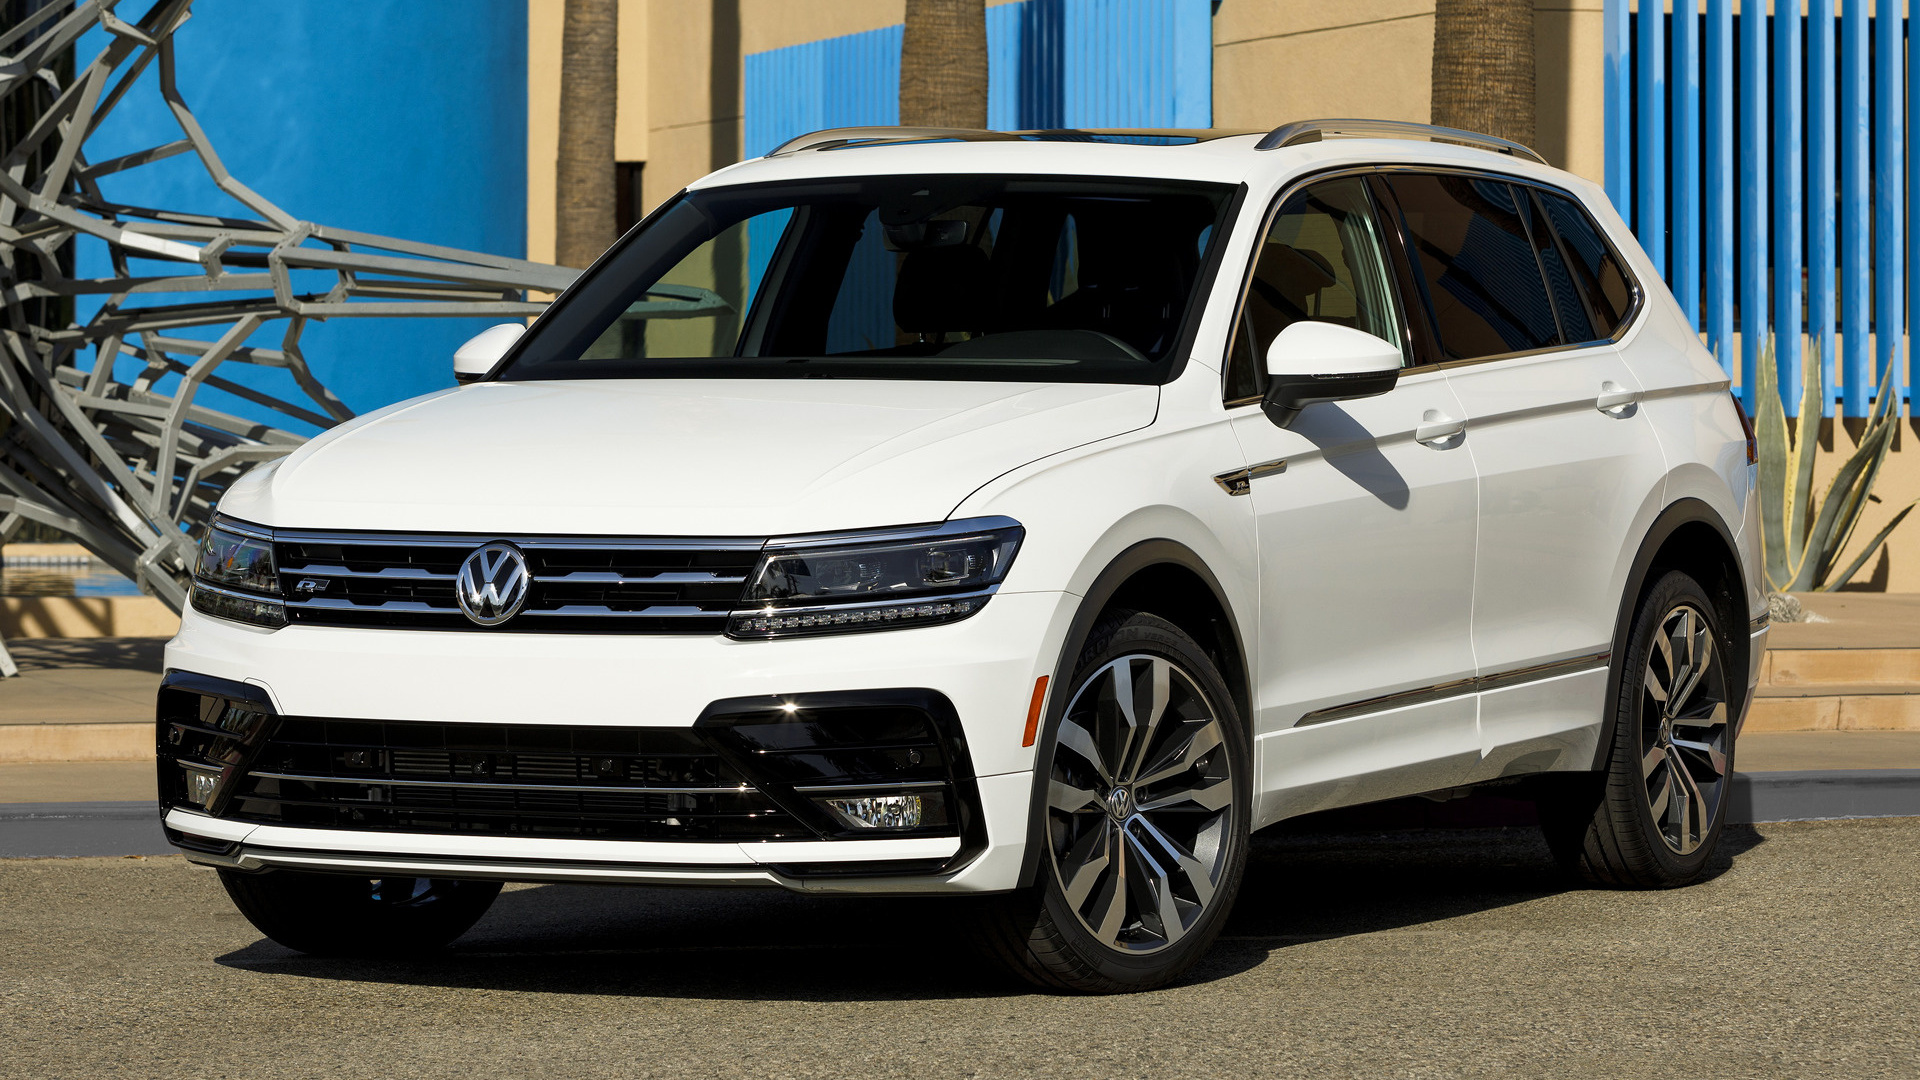 2018 volkswagen tiguan r line lwb us wallpapers and hd images car pixel. Black Bedroom Furniture Sets. Home Design Ideas